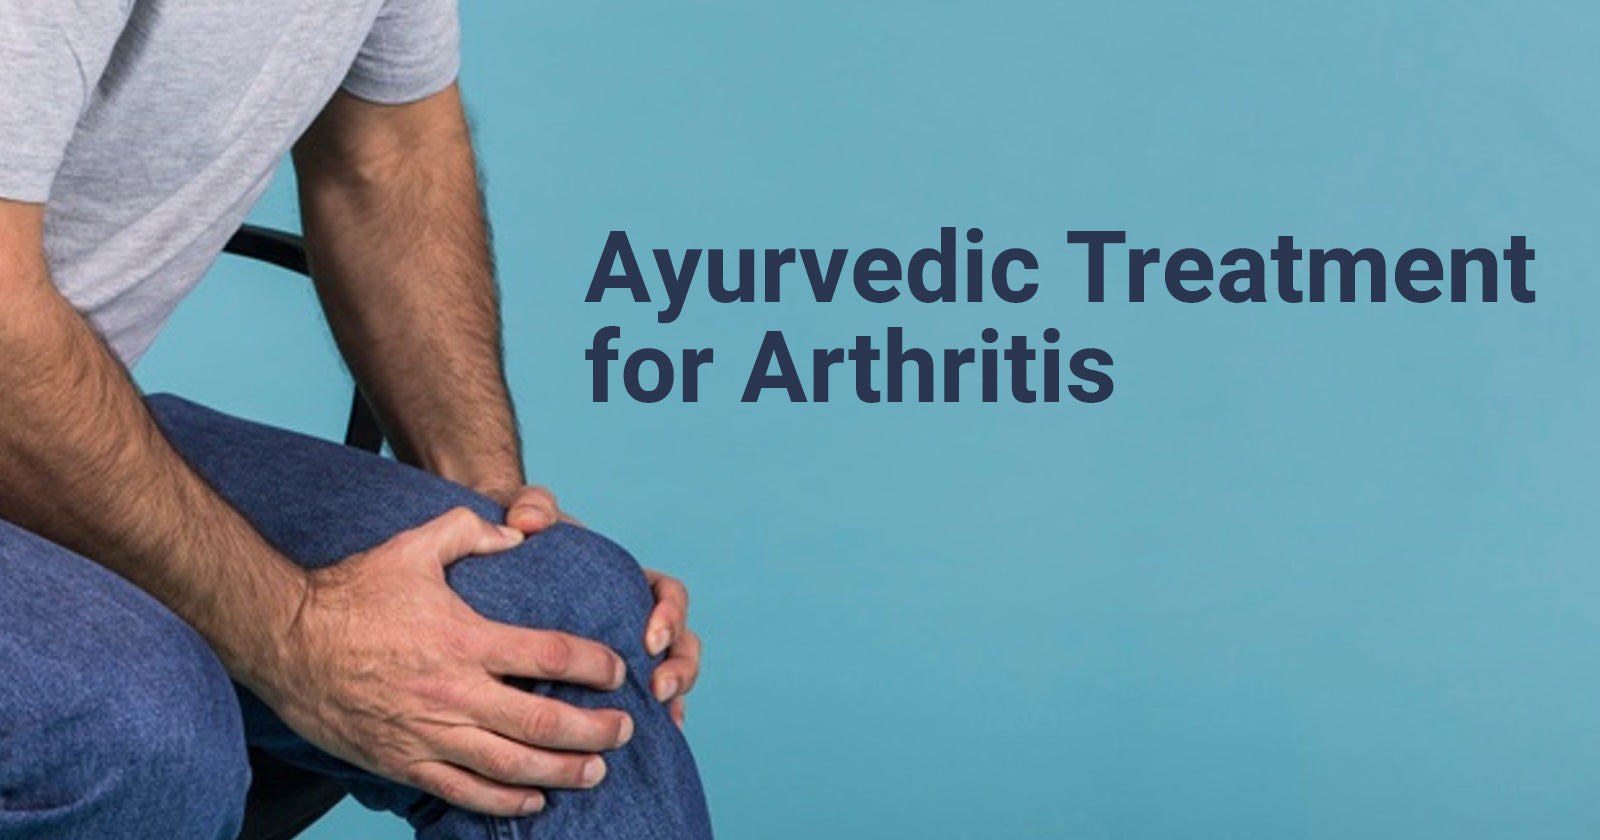 arthritis treatment in ayurveda